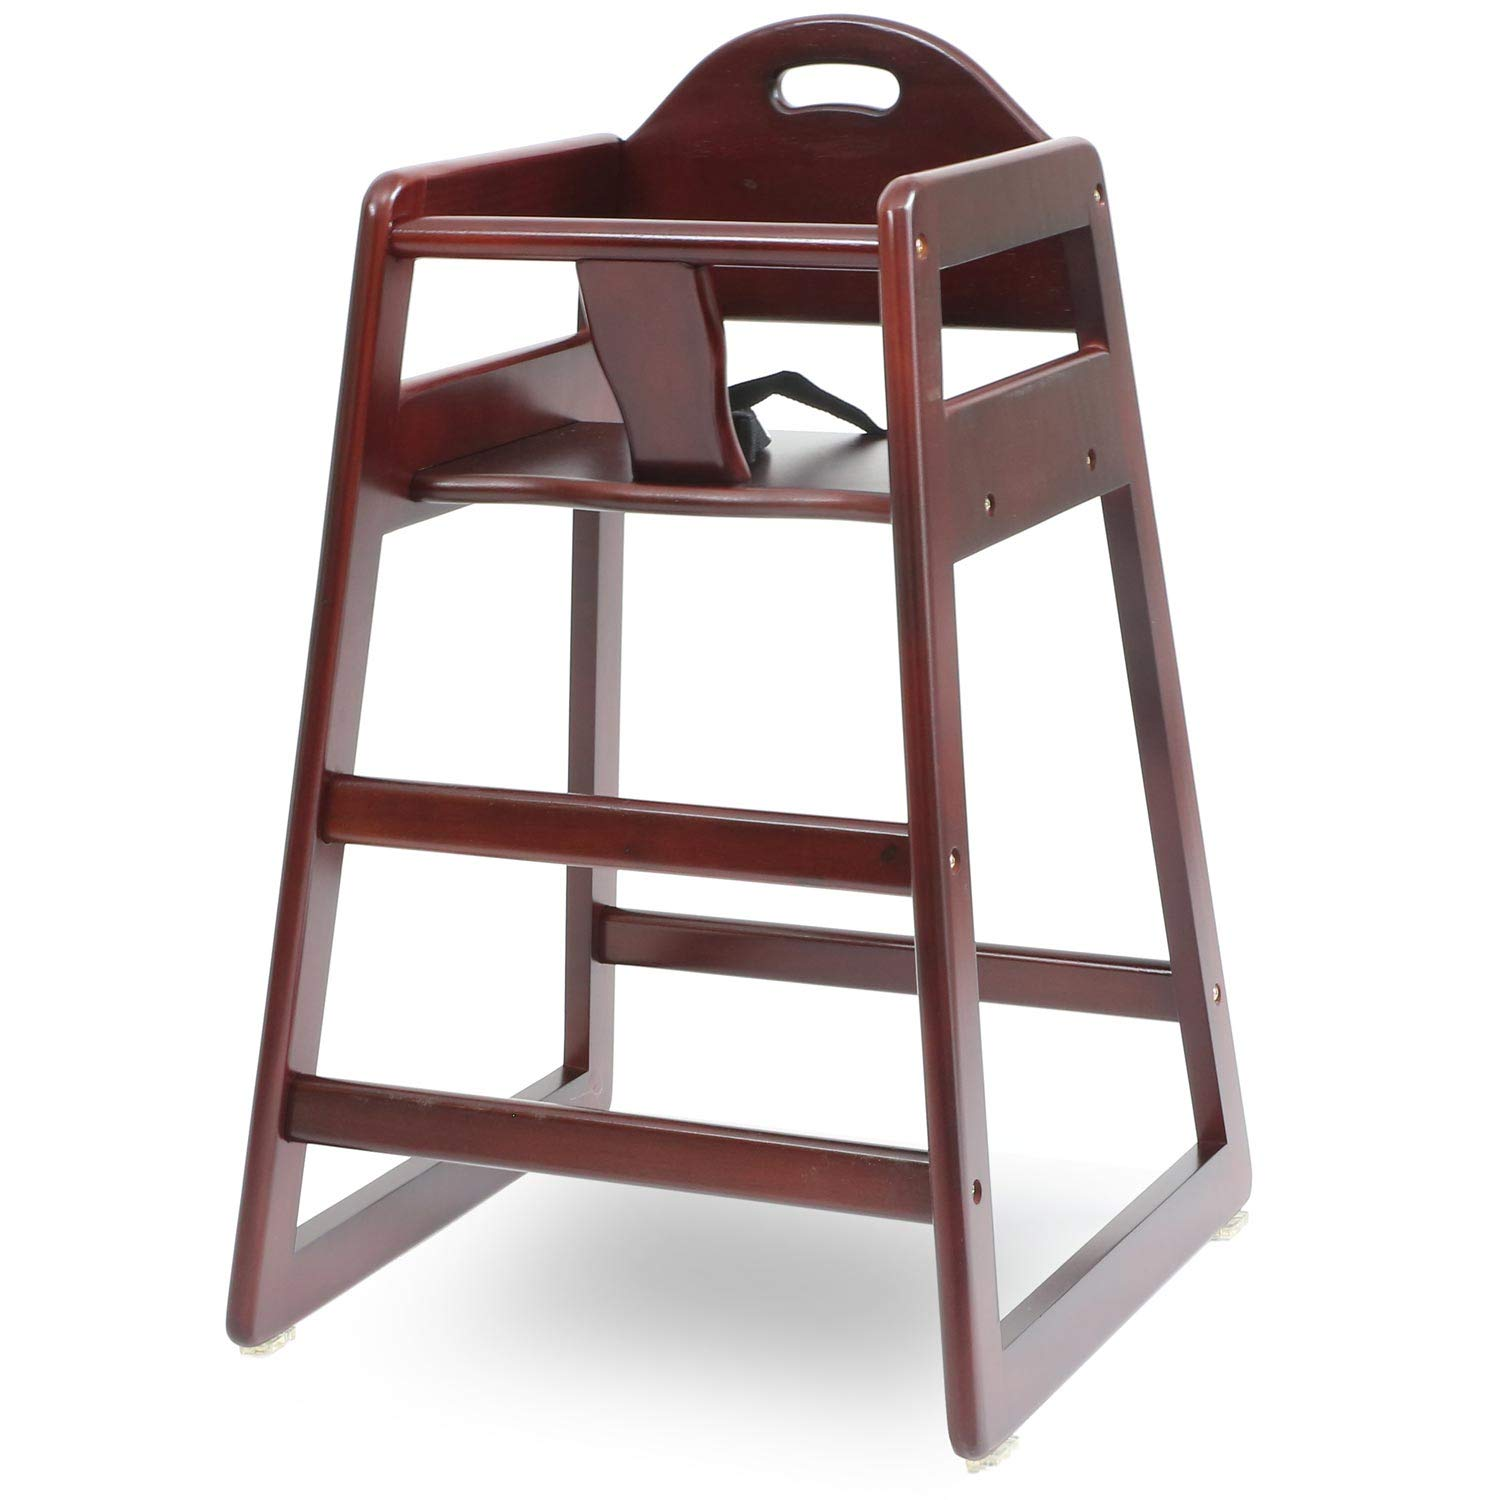 LA Baby Commercial Grade Stack-Able Solid Wood High Chair for Restaurant & Home Use - Cherry